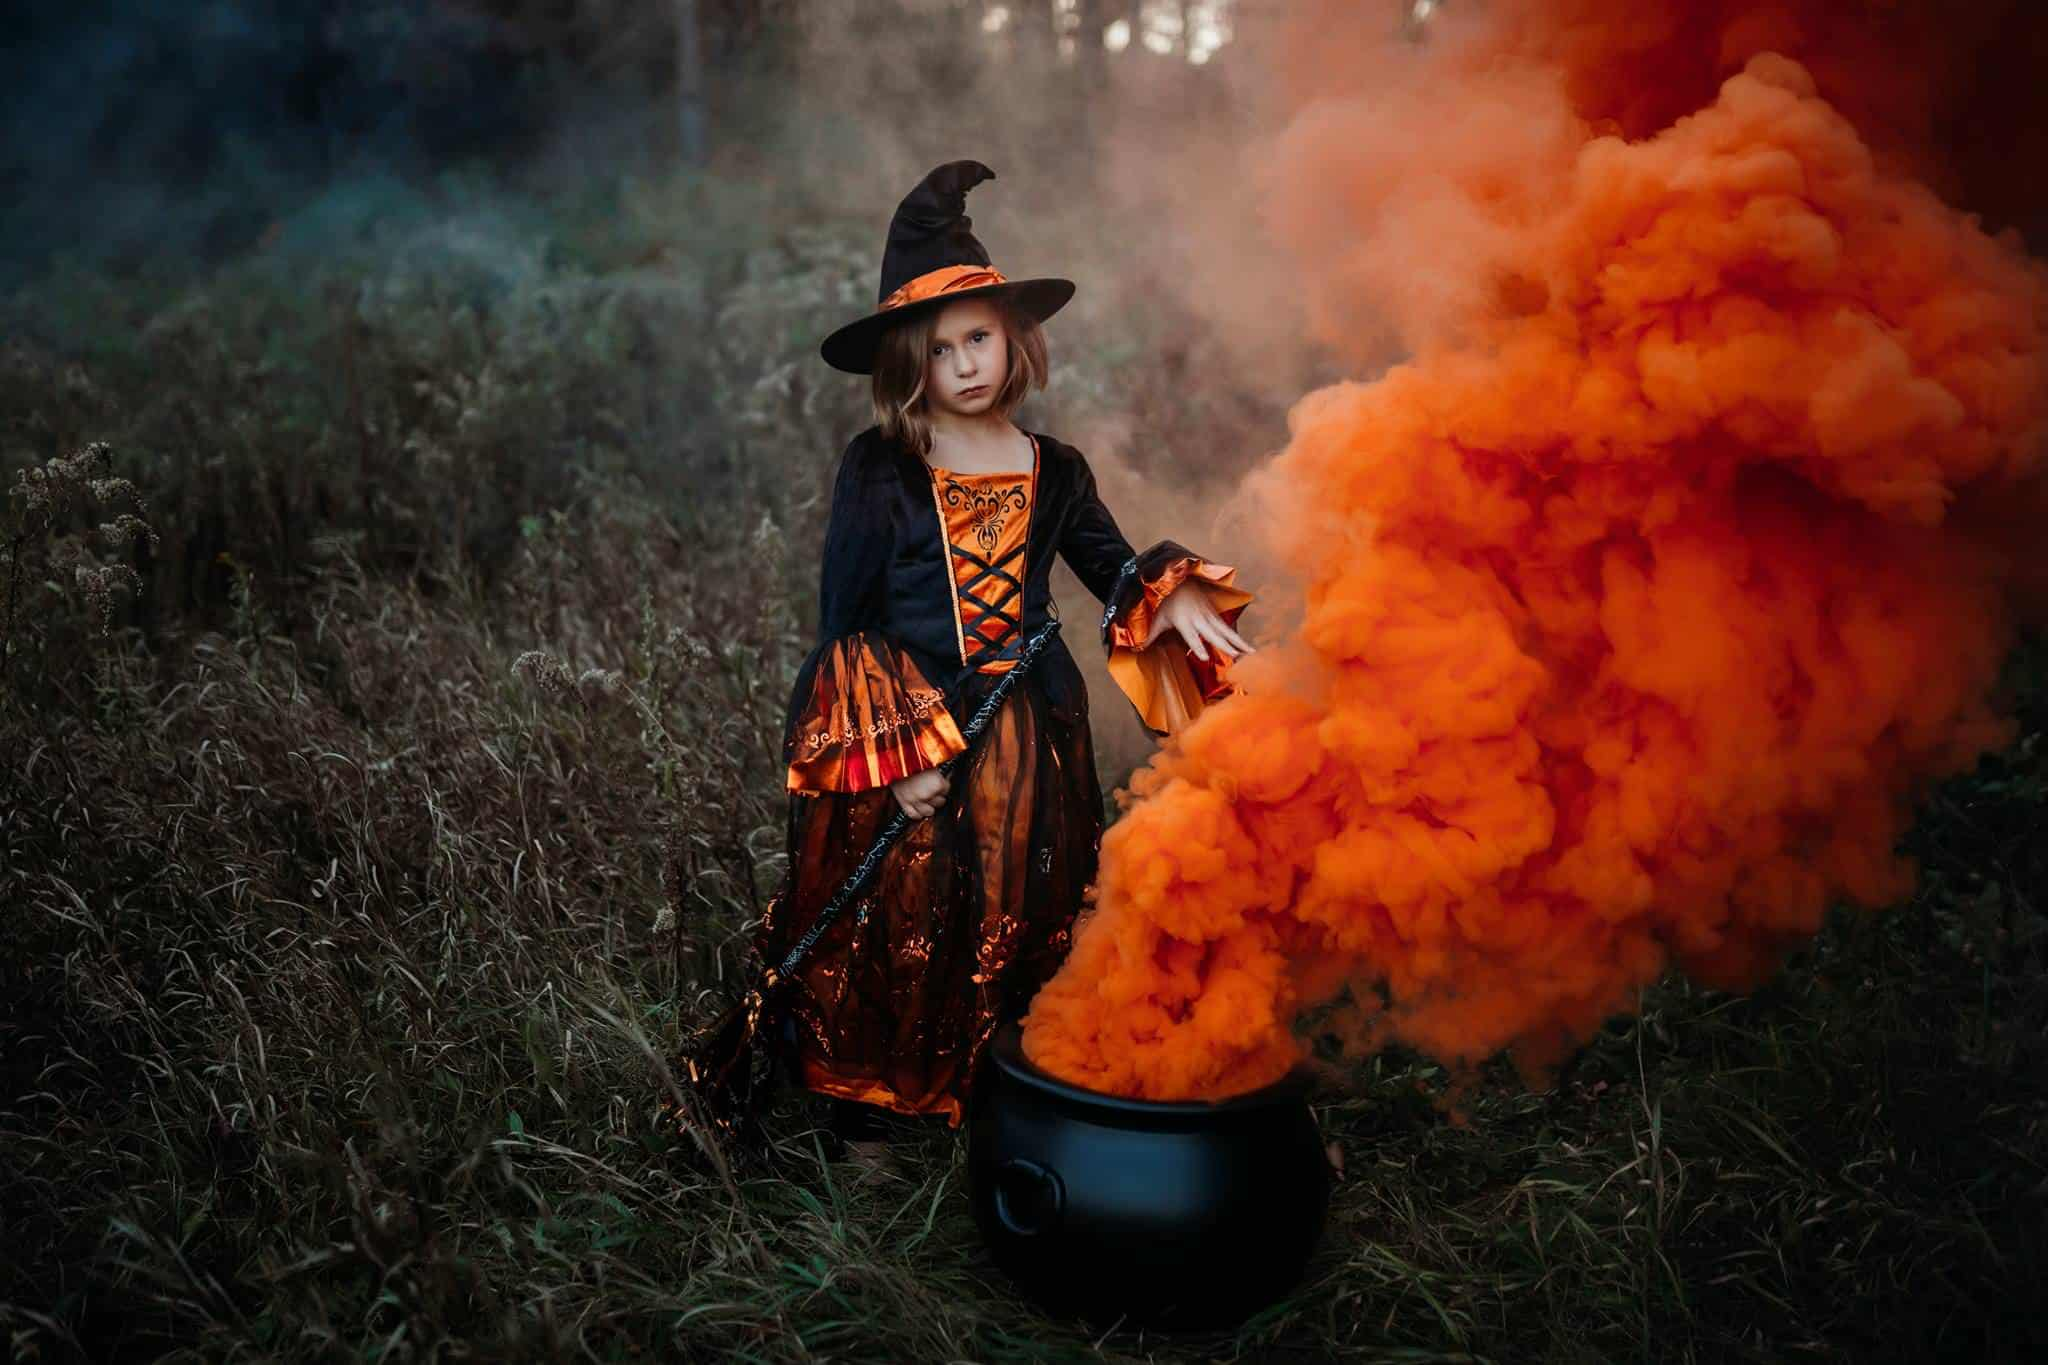 Halloween themed smoke grenade picture of a child in a witch costume